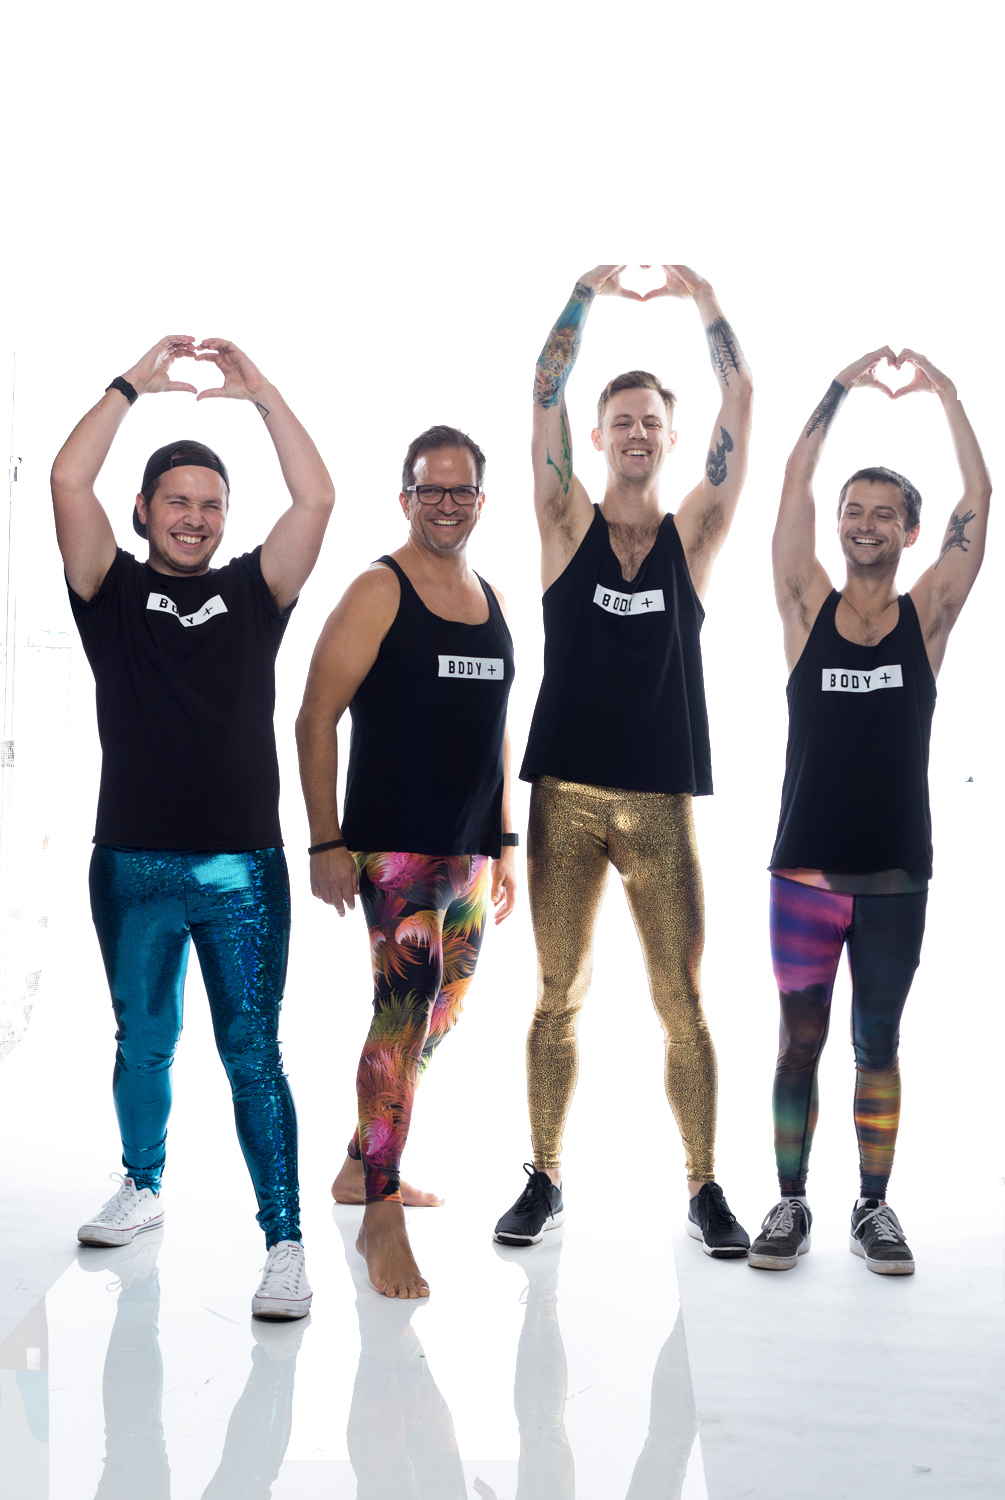 Evolve Fit Wear Plans First Yoga Pants Parade PDX to Support Body ...